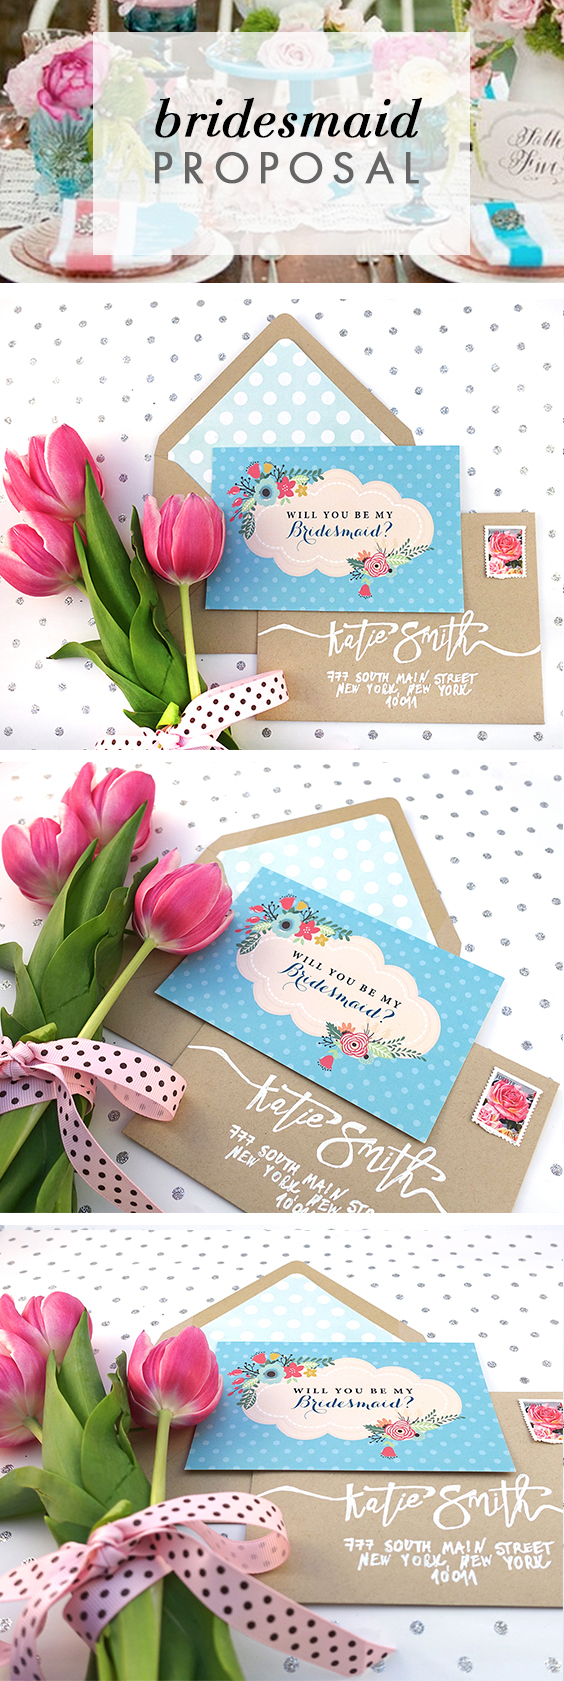 Turquoise Will You Be my Bridesmaid Card will make your bridesmaids say YES!